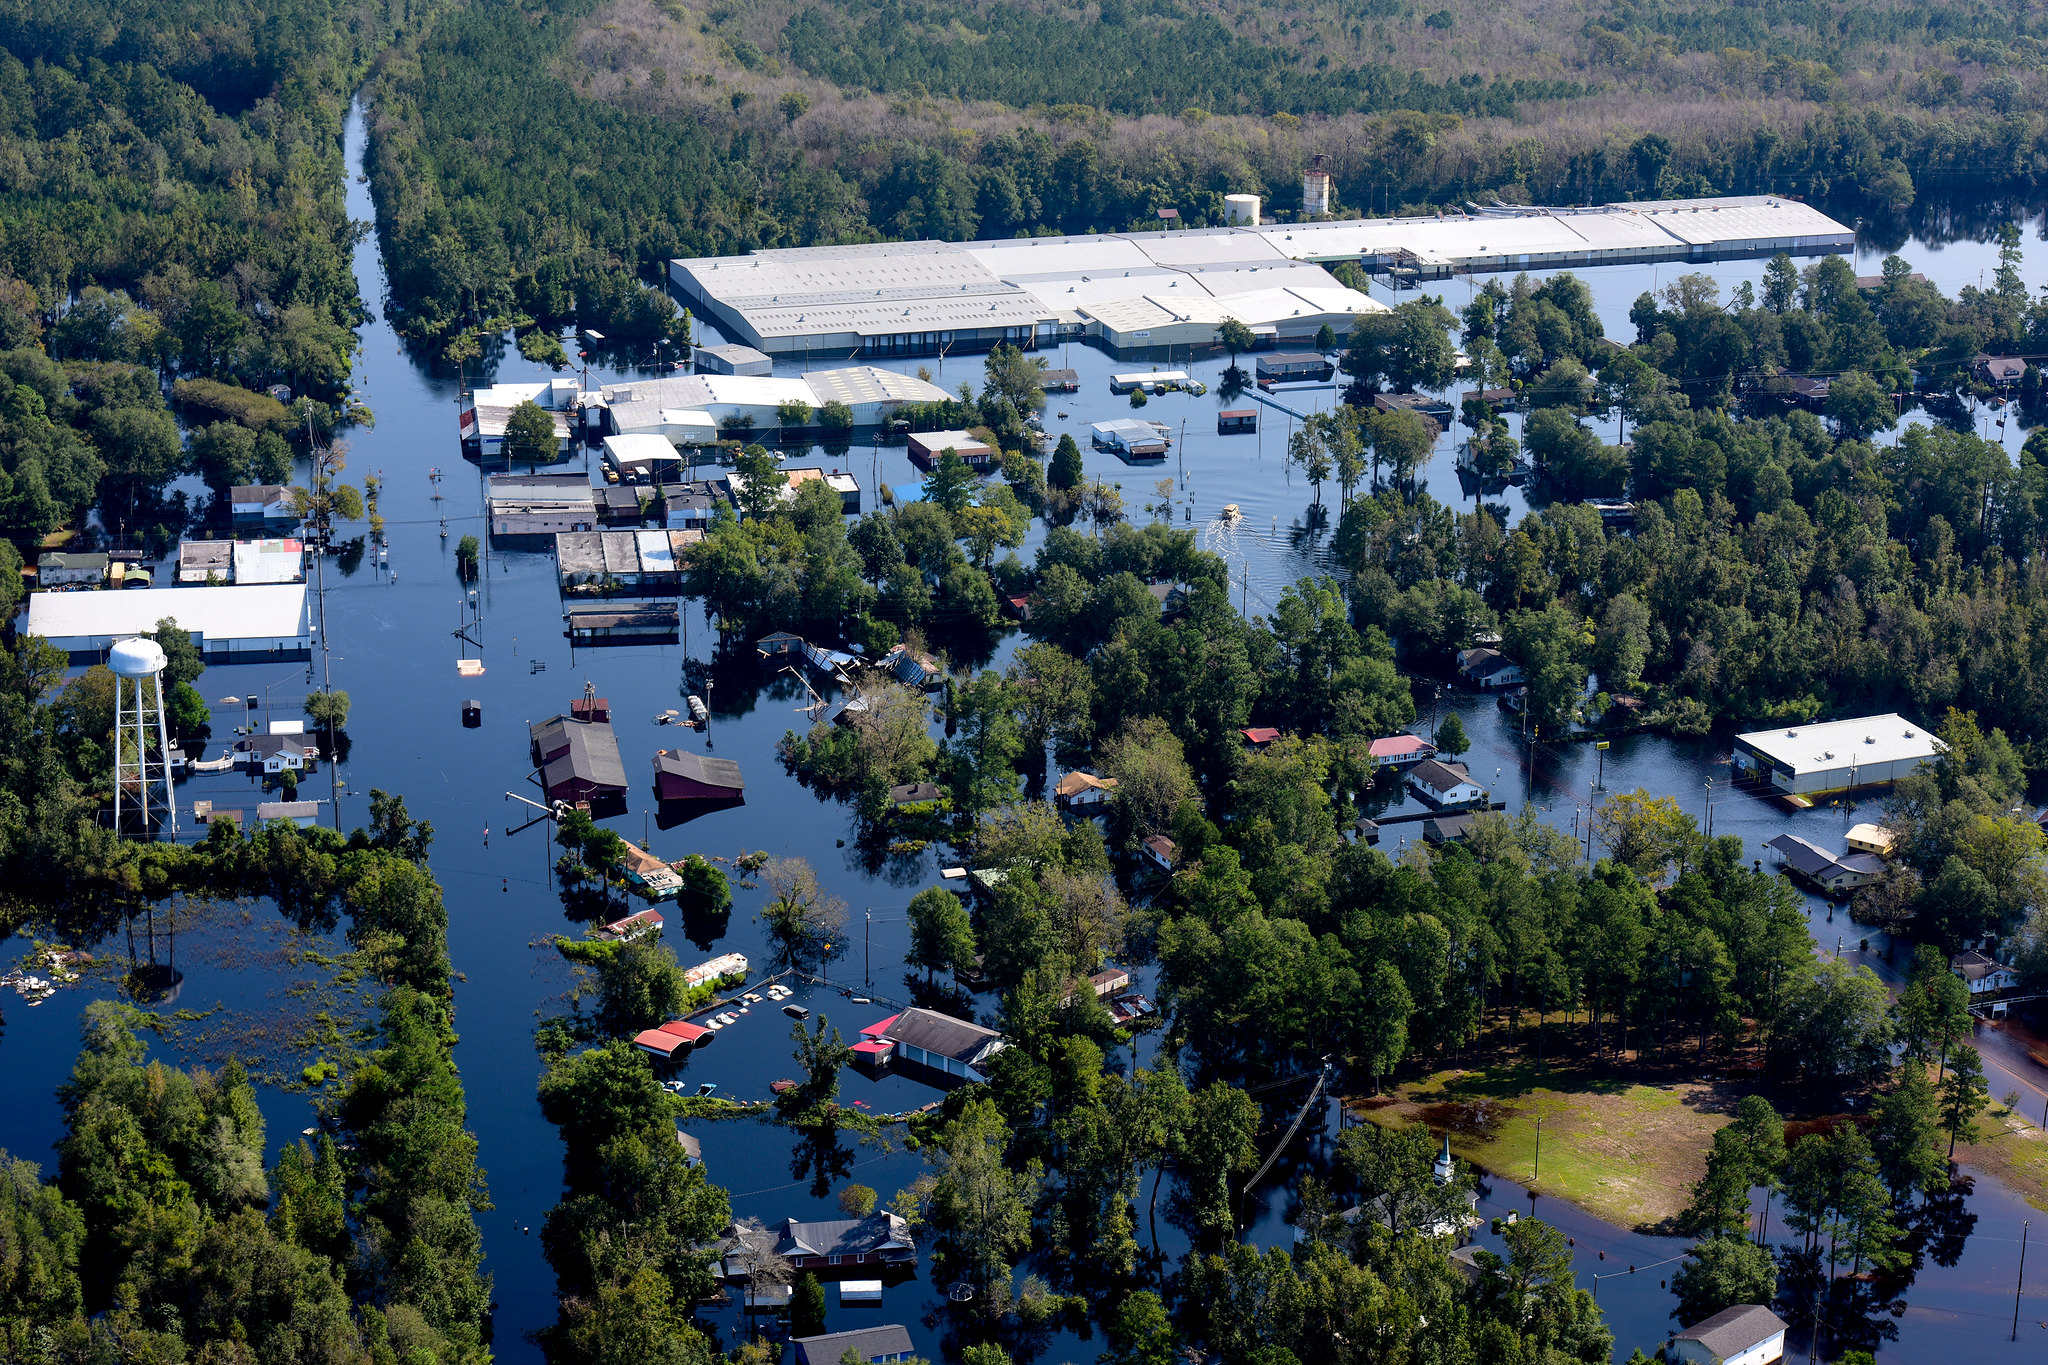 Aerial photos of flooding caused by Hurricane Florence.